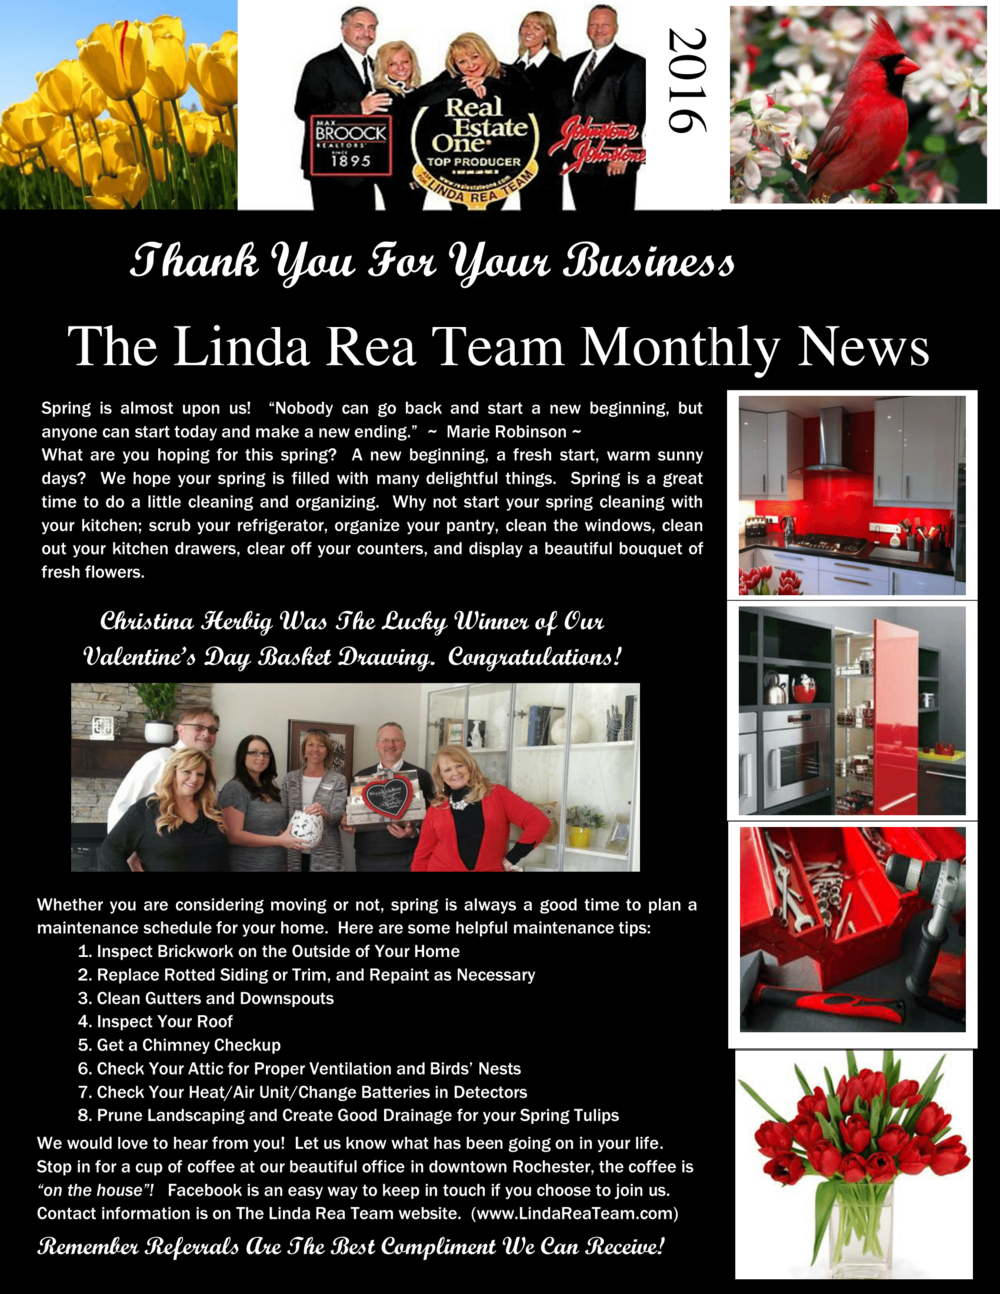 The-Linda-Rea-Team-Monthly-News-March-2016-pdf-1.png